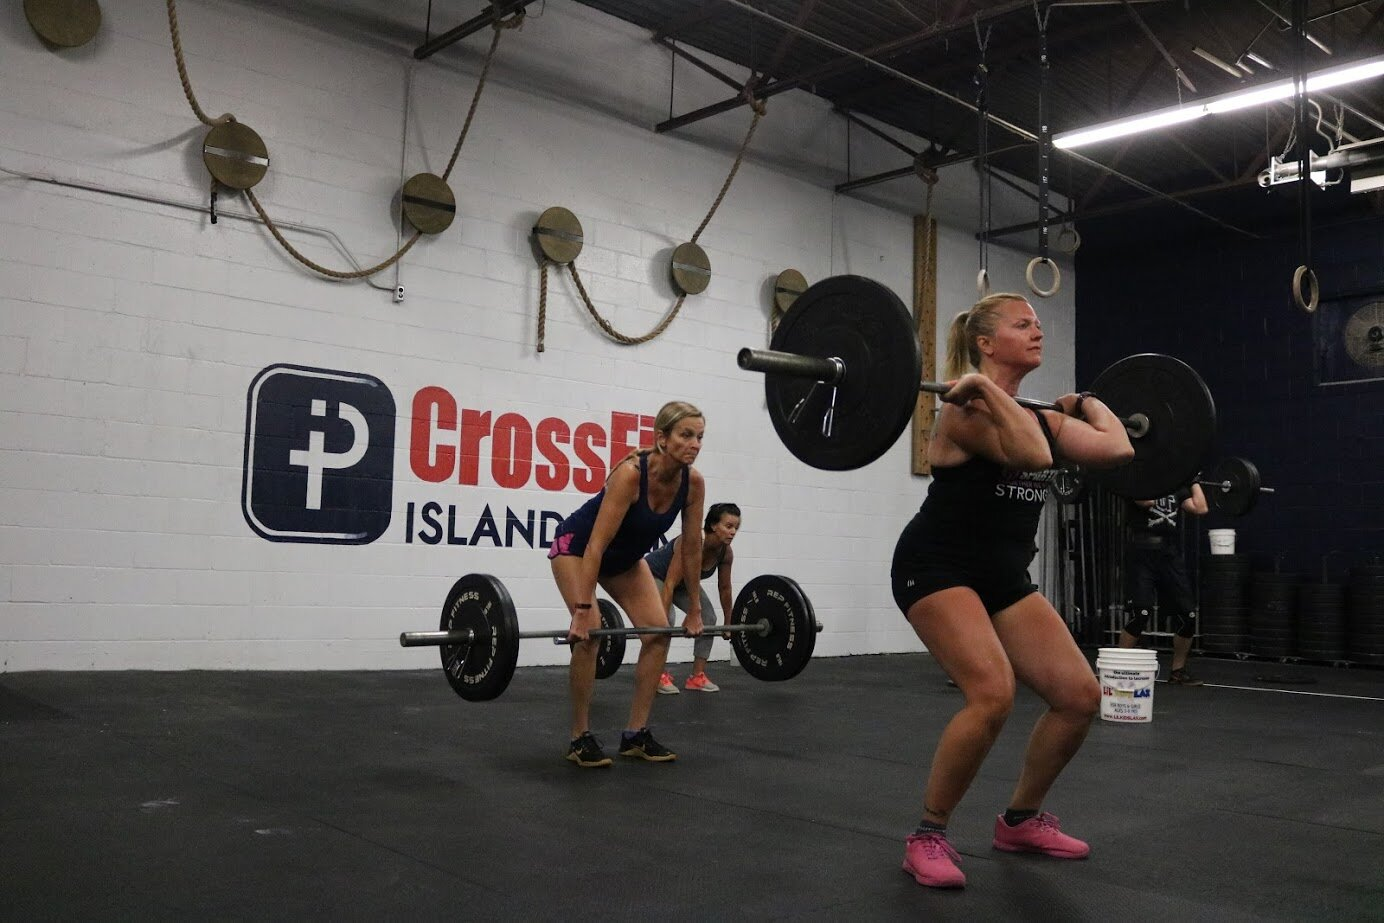 5:30am Ladies, Left to Right: Chrissie Hult, Erin Canepa & Corinne Mahoney